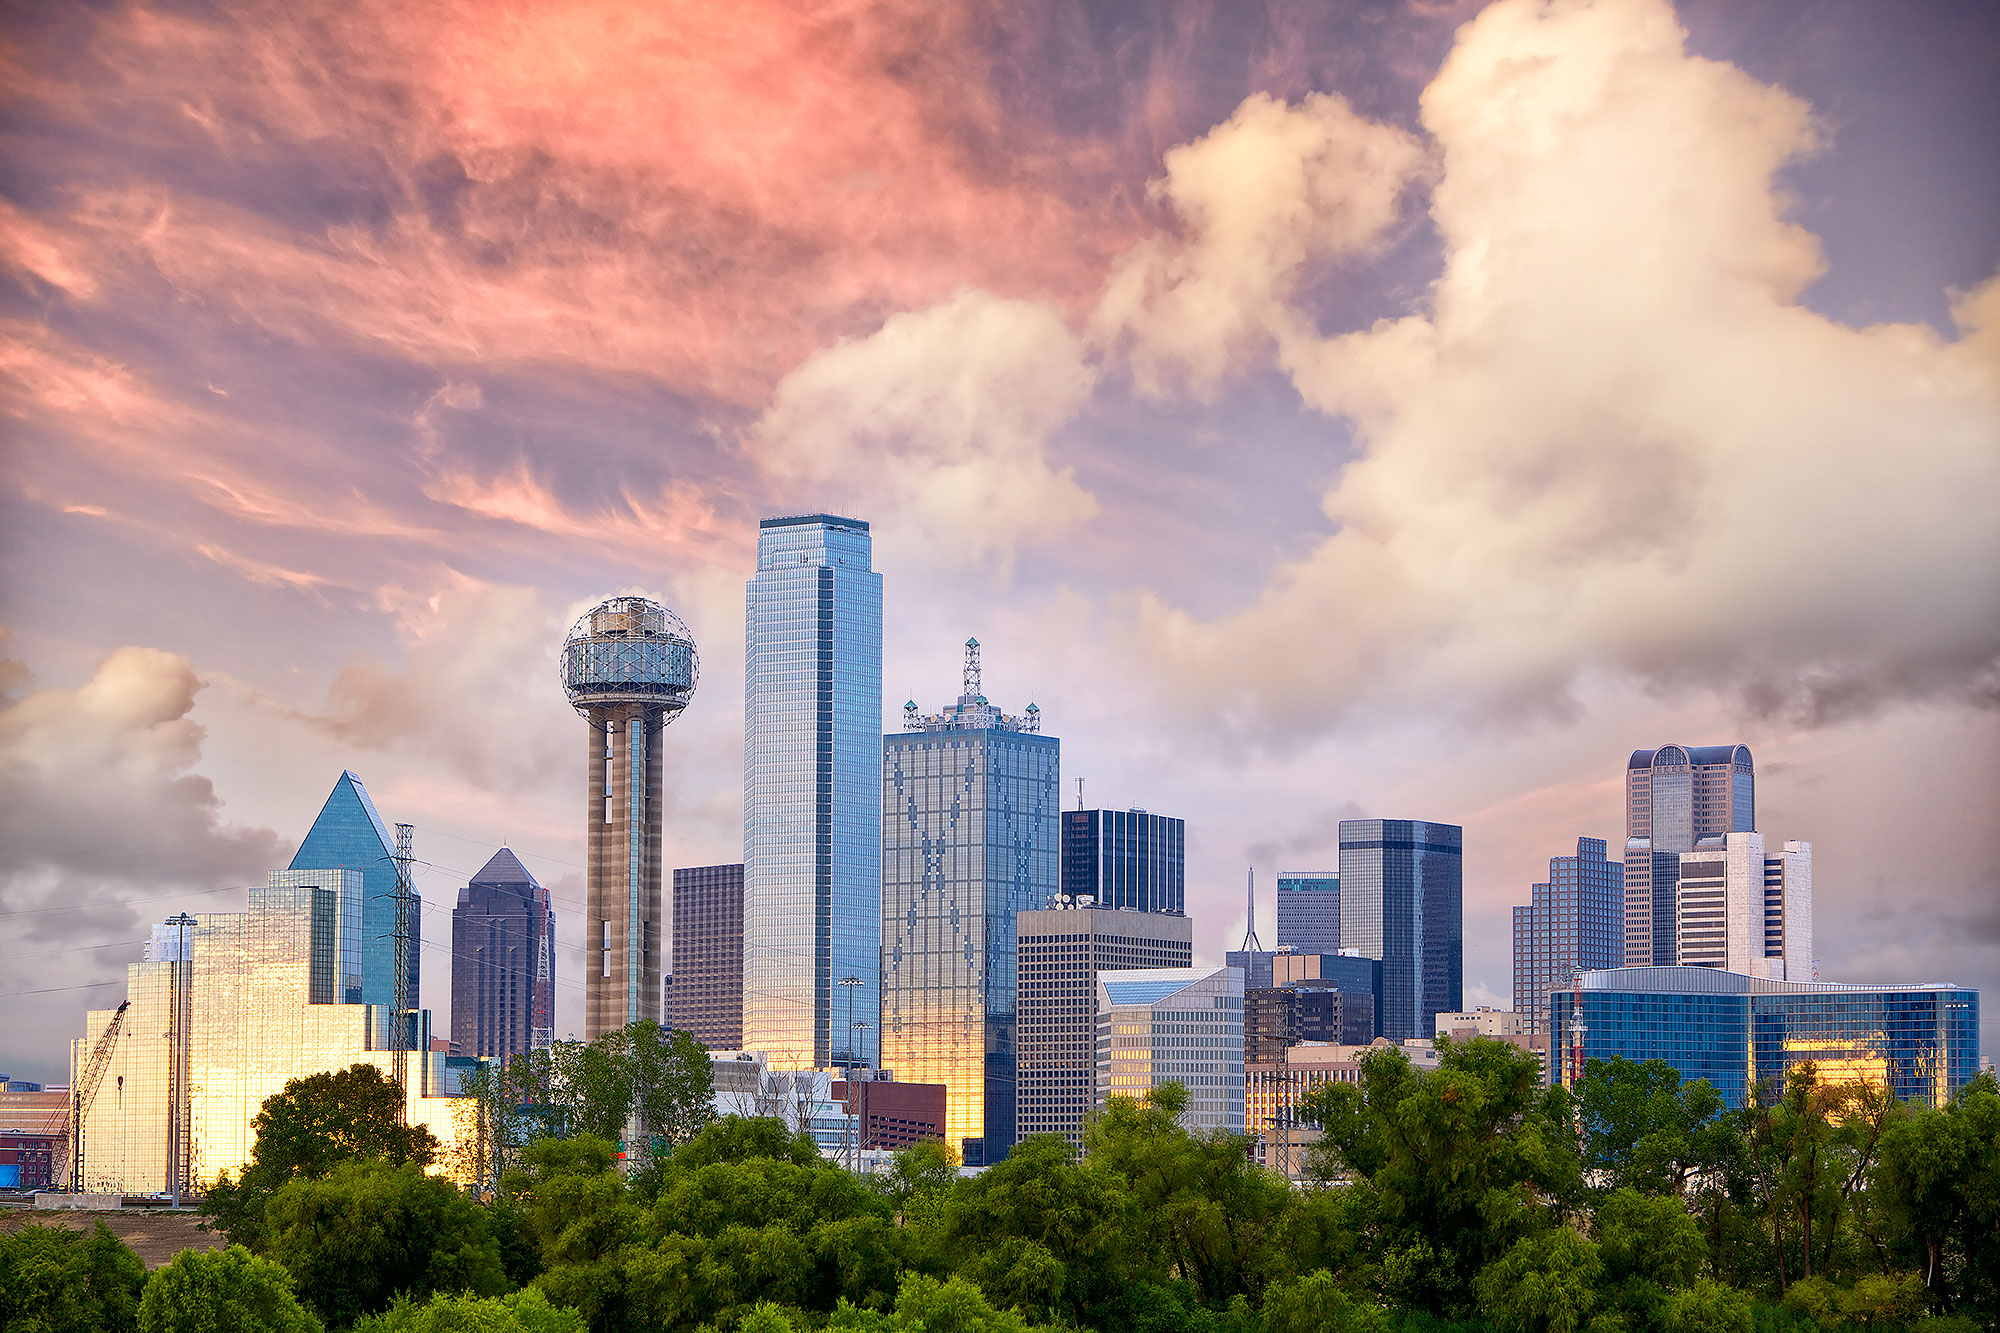 17. Dallas, Texas